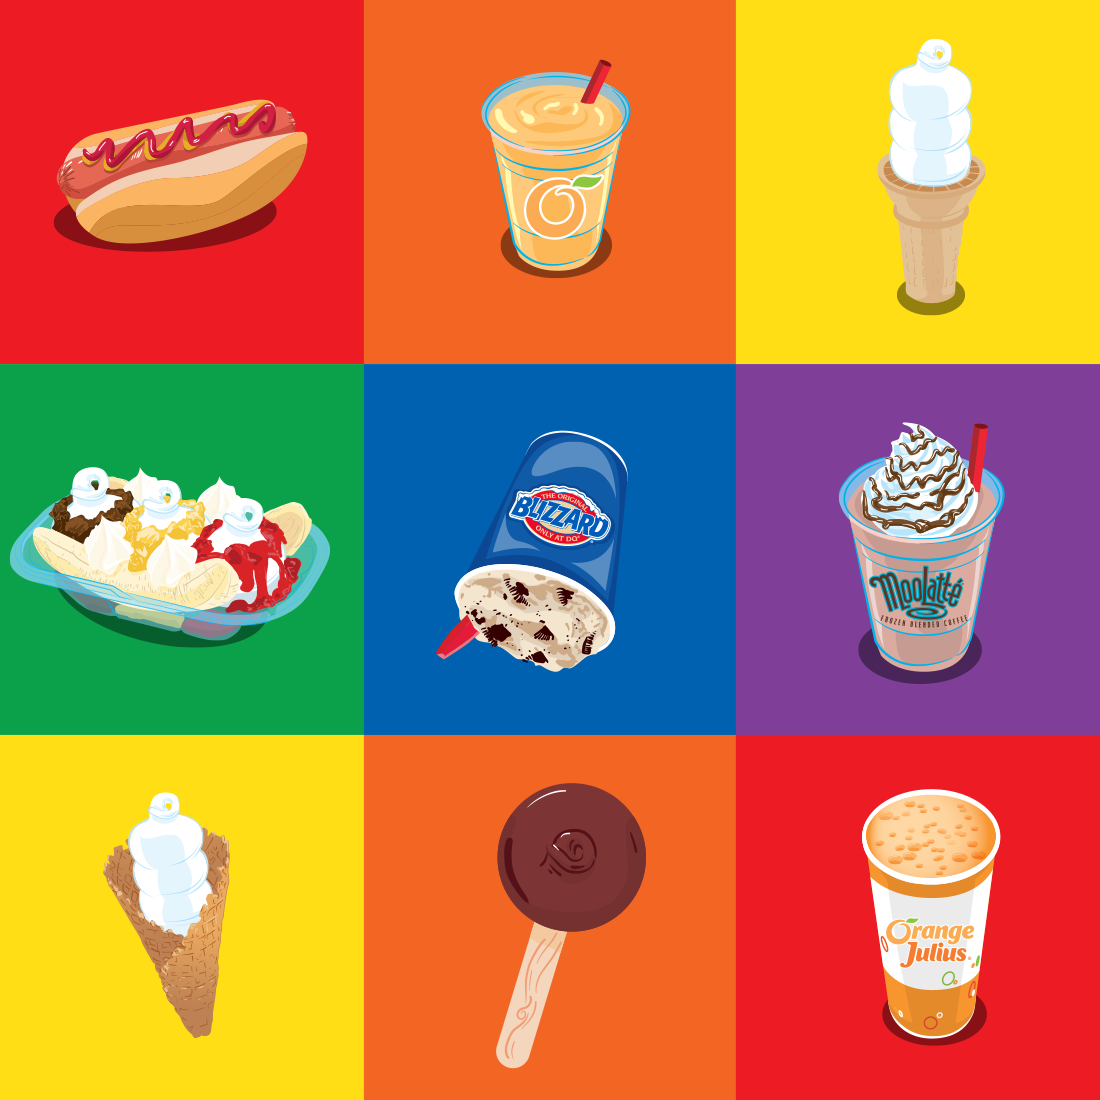 International Dairy Queen Product illustration